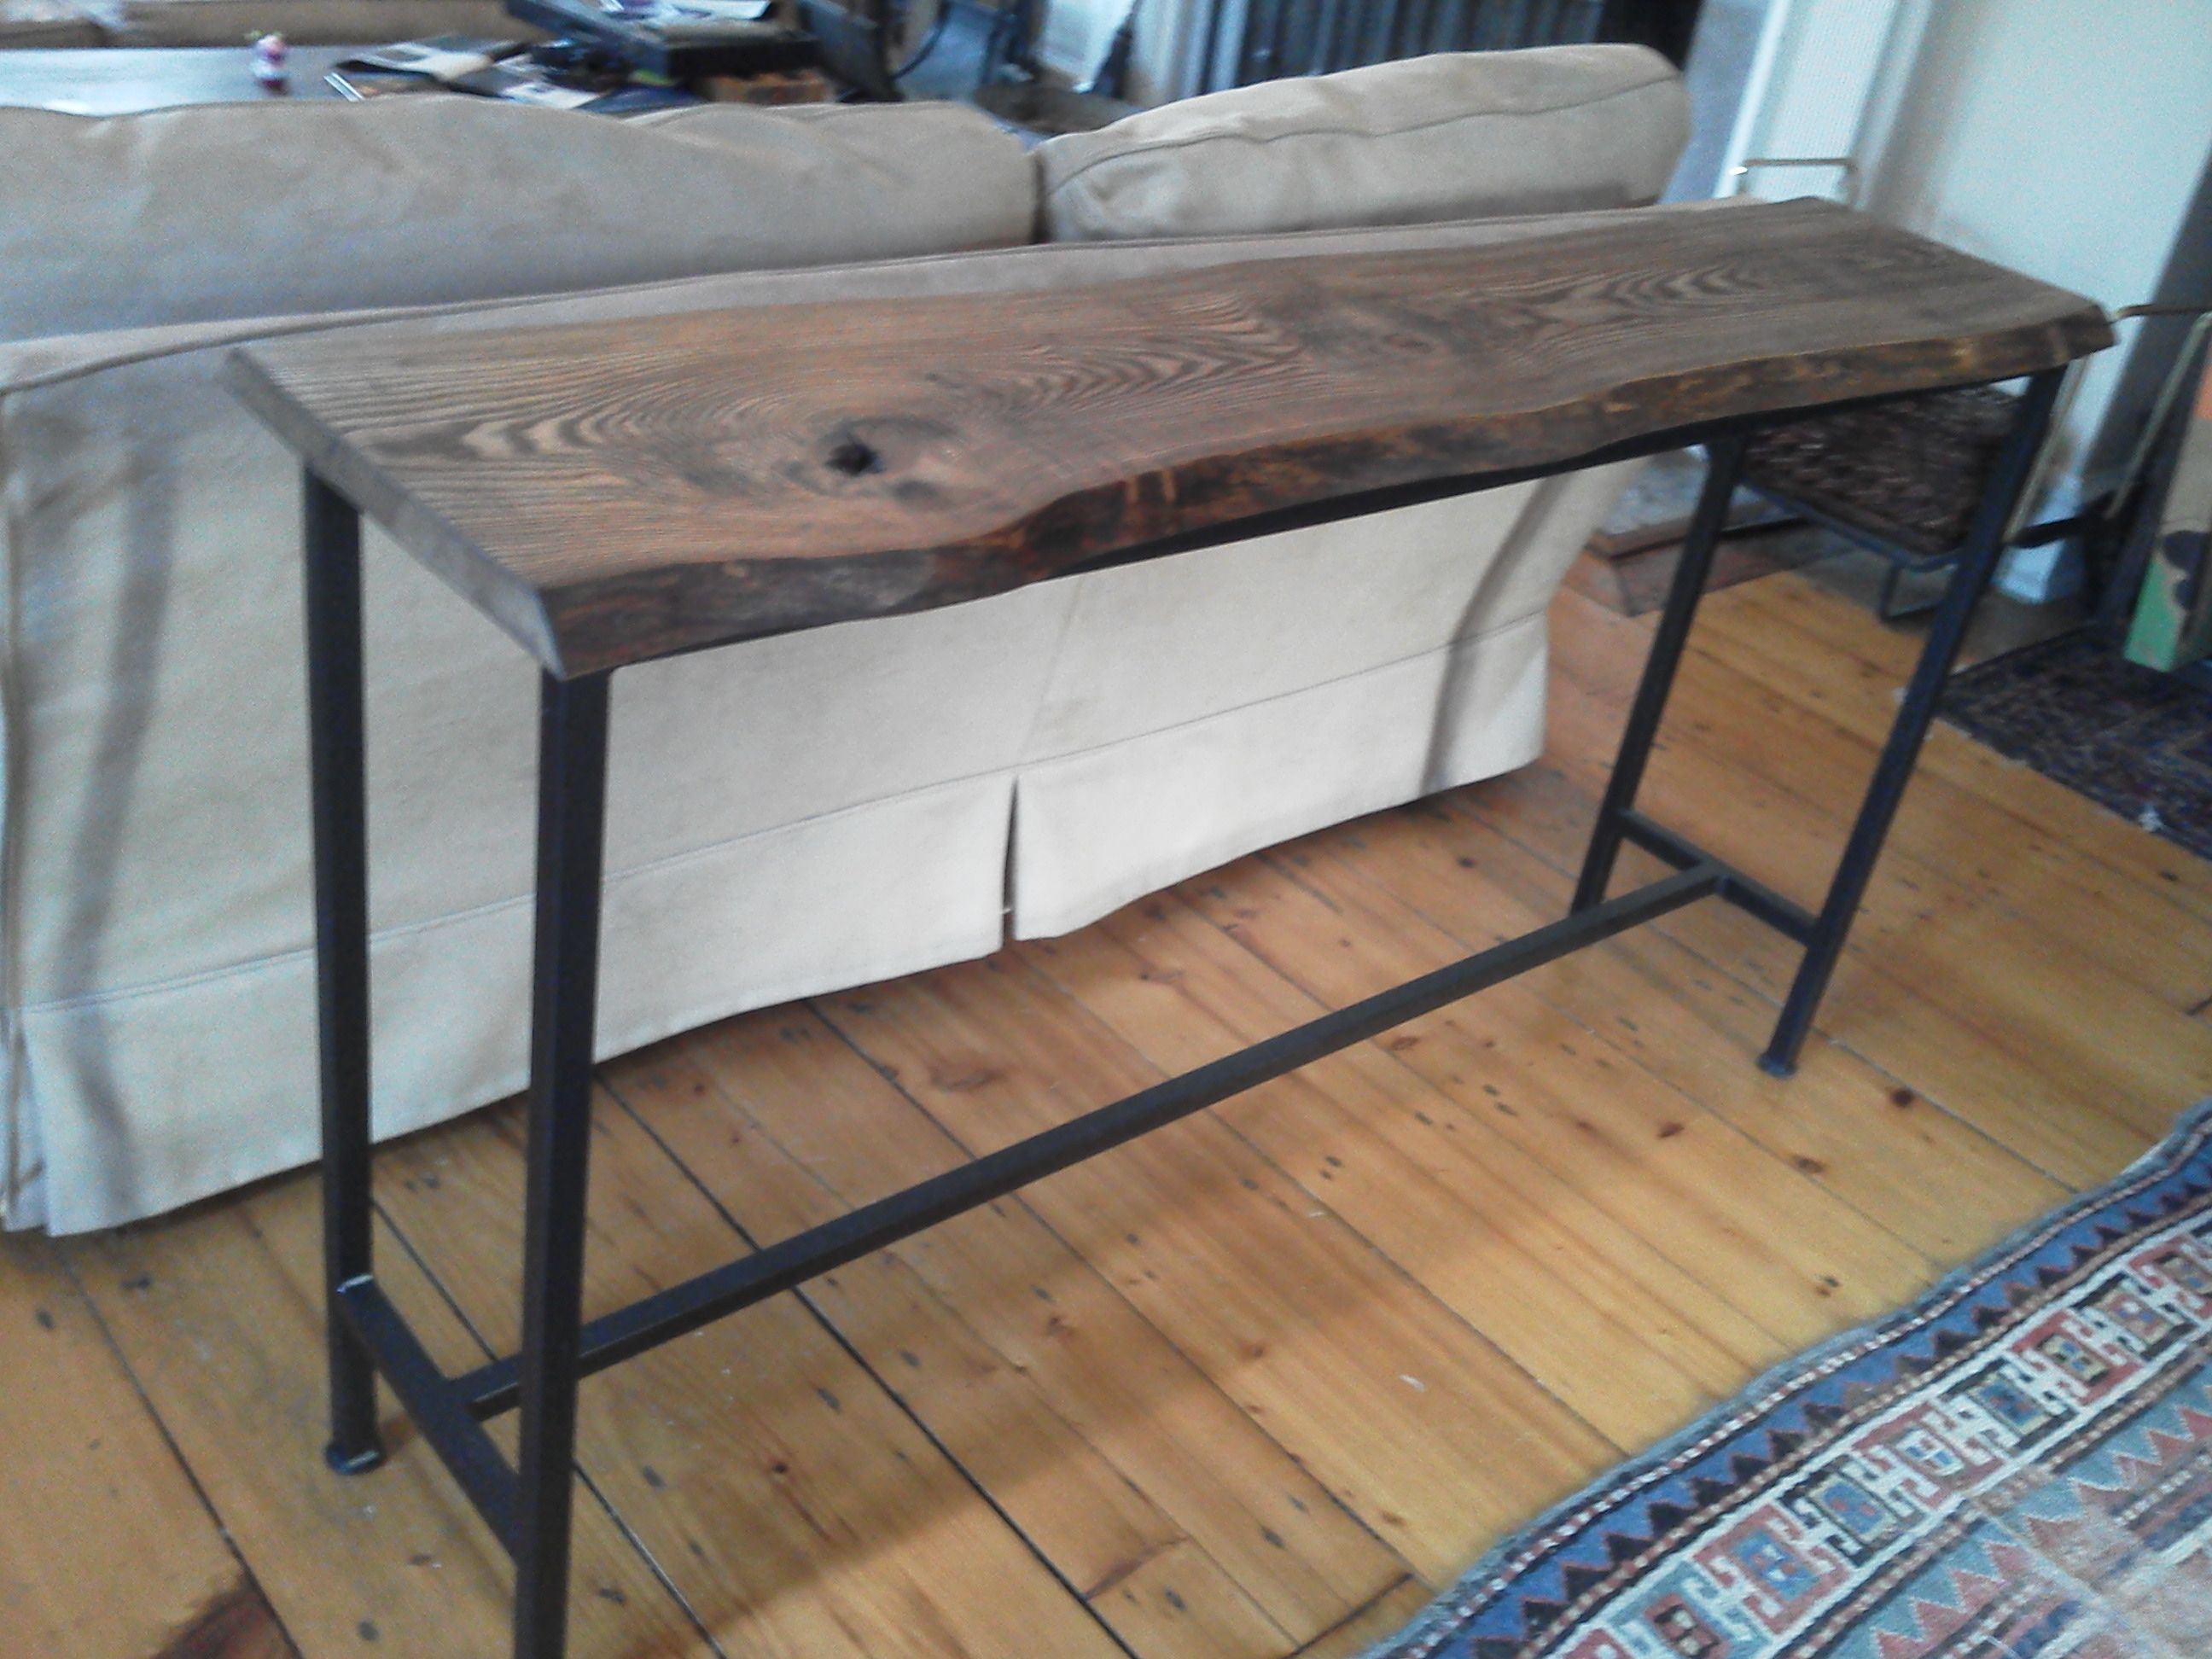 Wooden Sofa Table Legs Amazon Set 5 Seater Live Edge Oak Console With Iron Base Tables